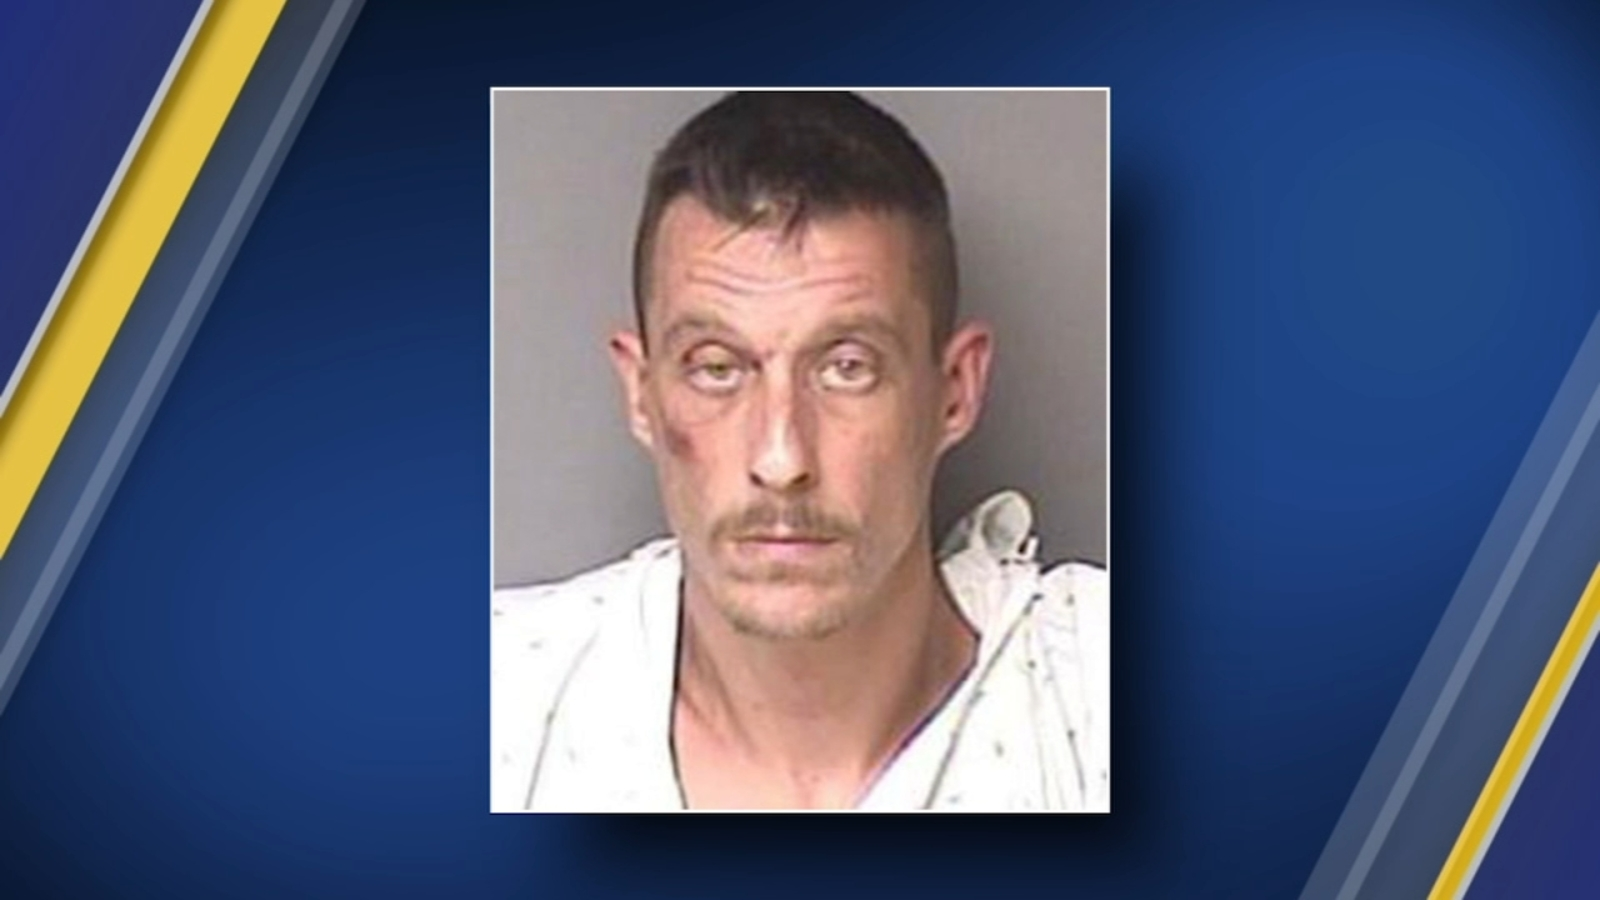 Police: Man gets naked at church, punches churchgoer in